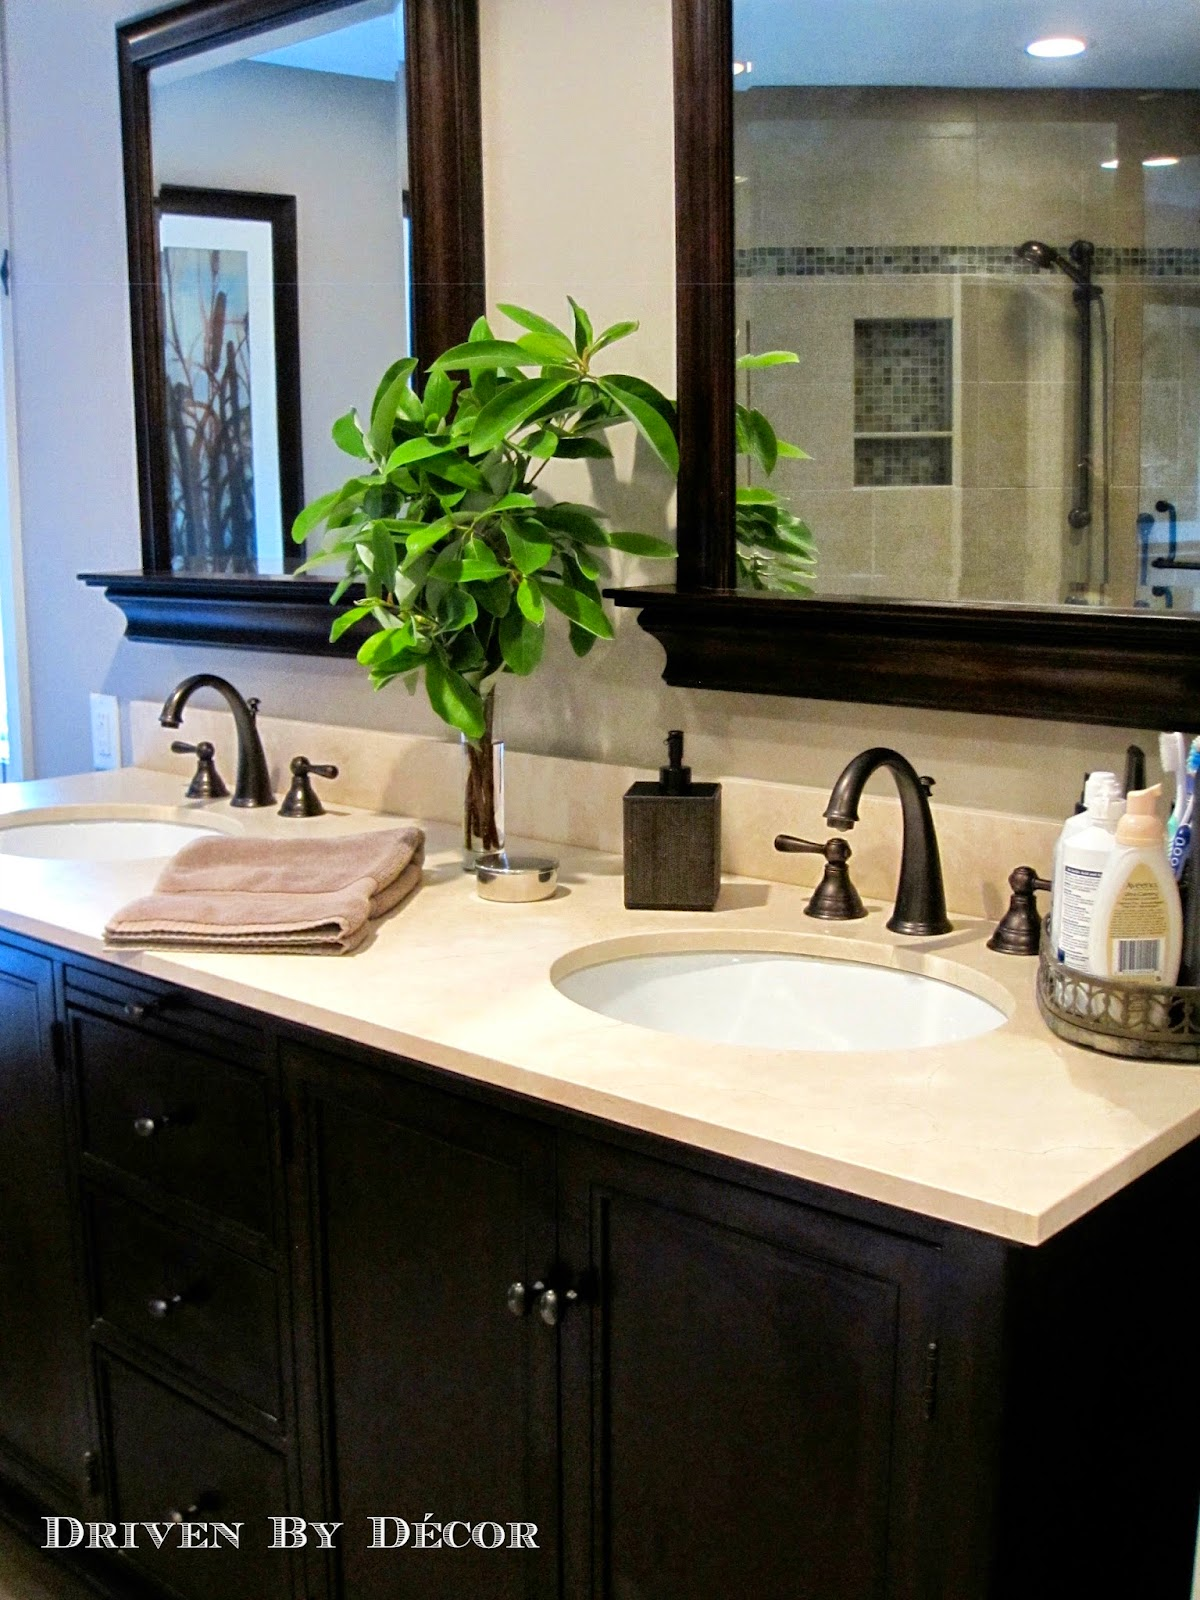 House tour master bedroom bathroom driven by decor - How to decorate a master bathroom ...